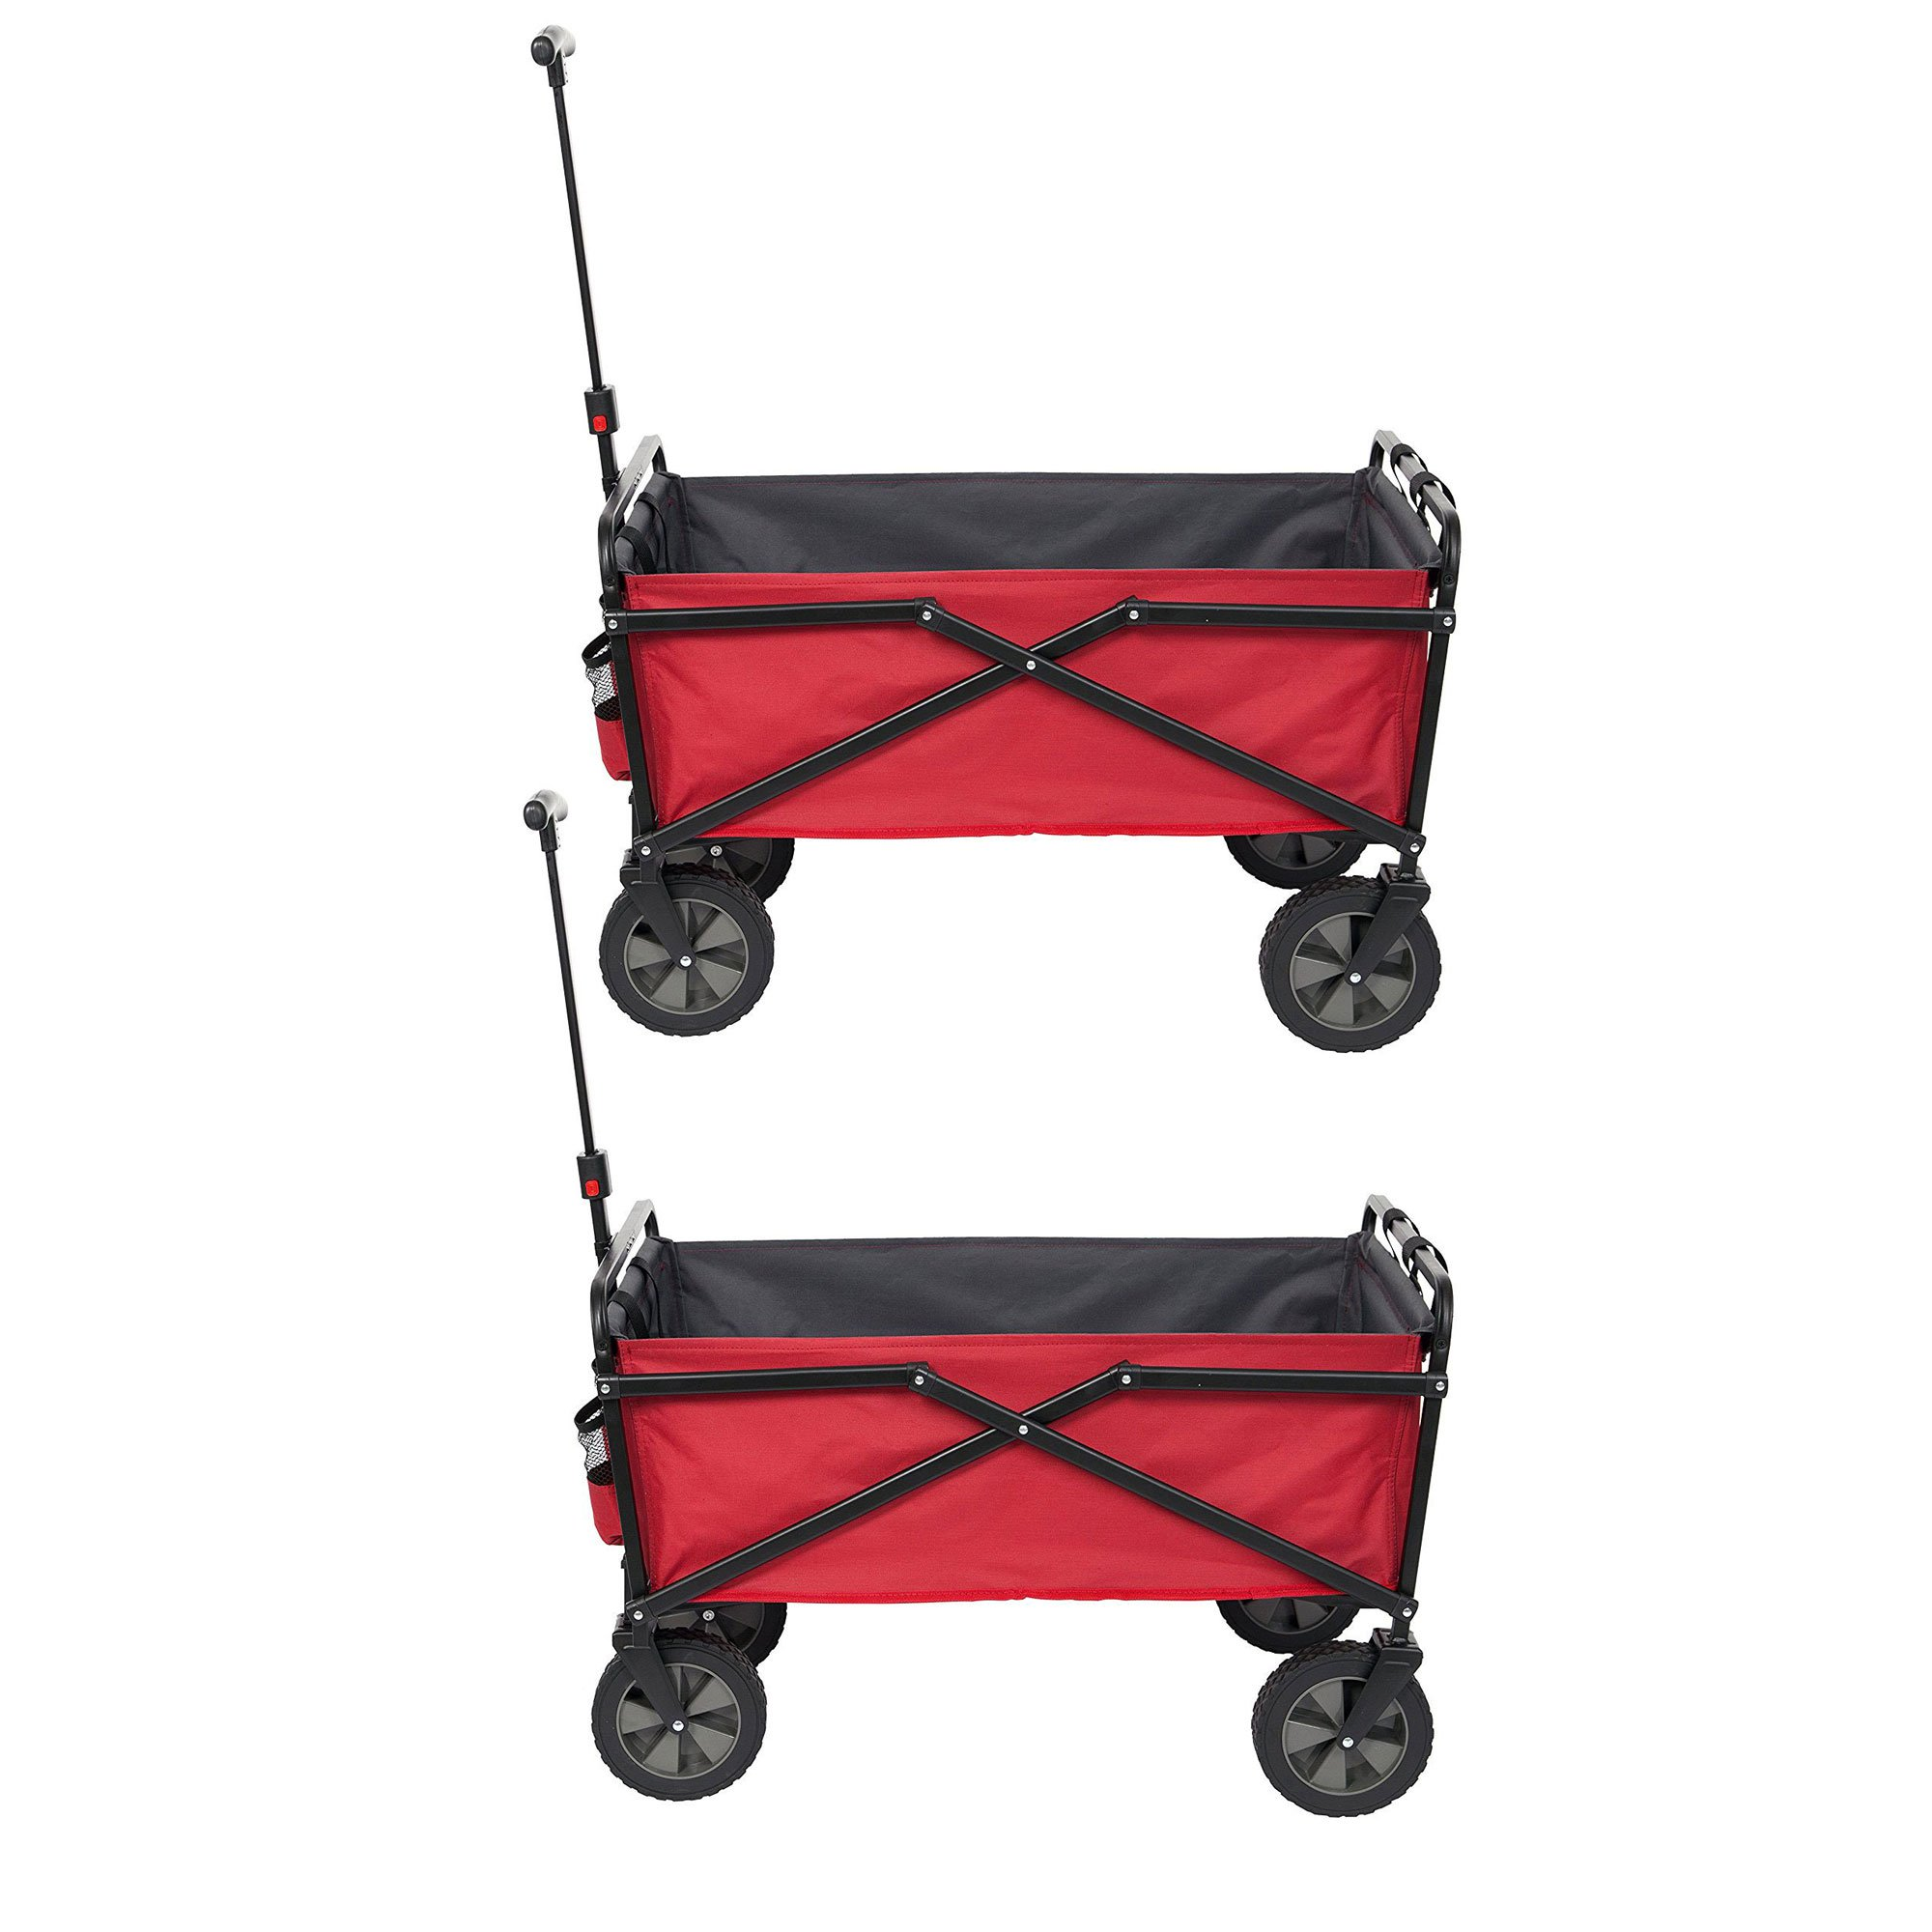 Seina Collapsible Steel Frame Folding Utility Wagon Garden Cart, Red (2 Pack)